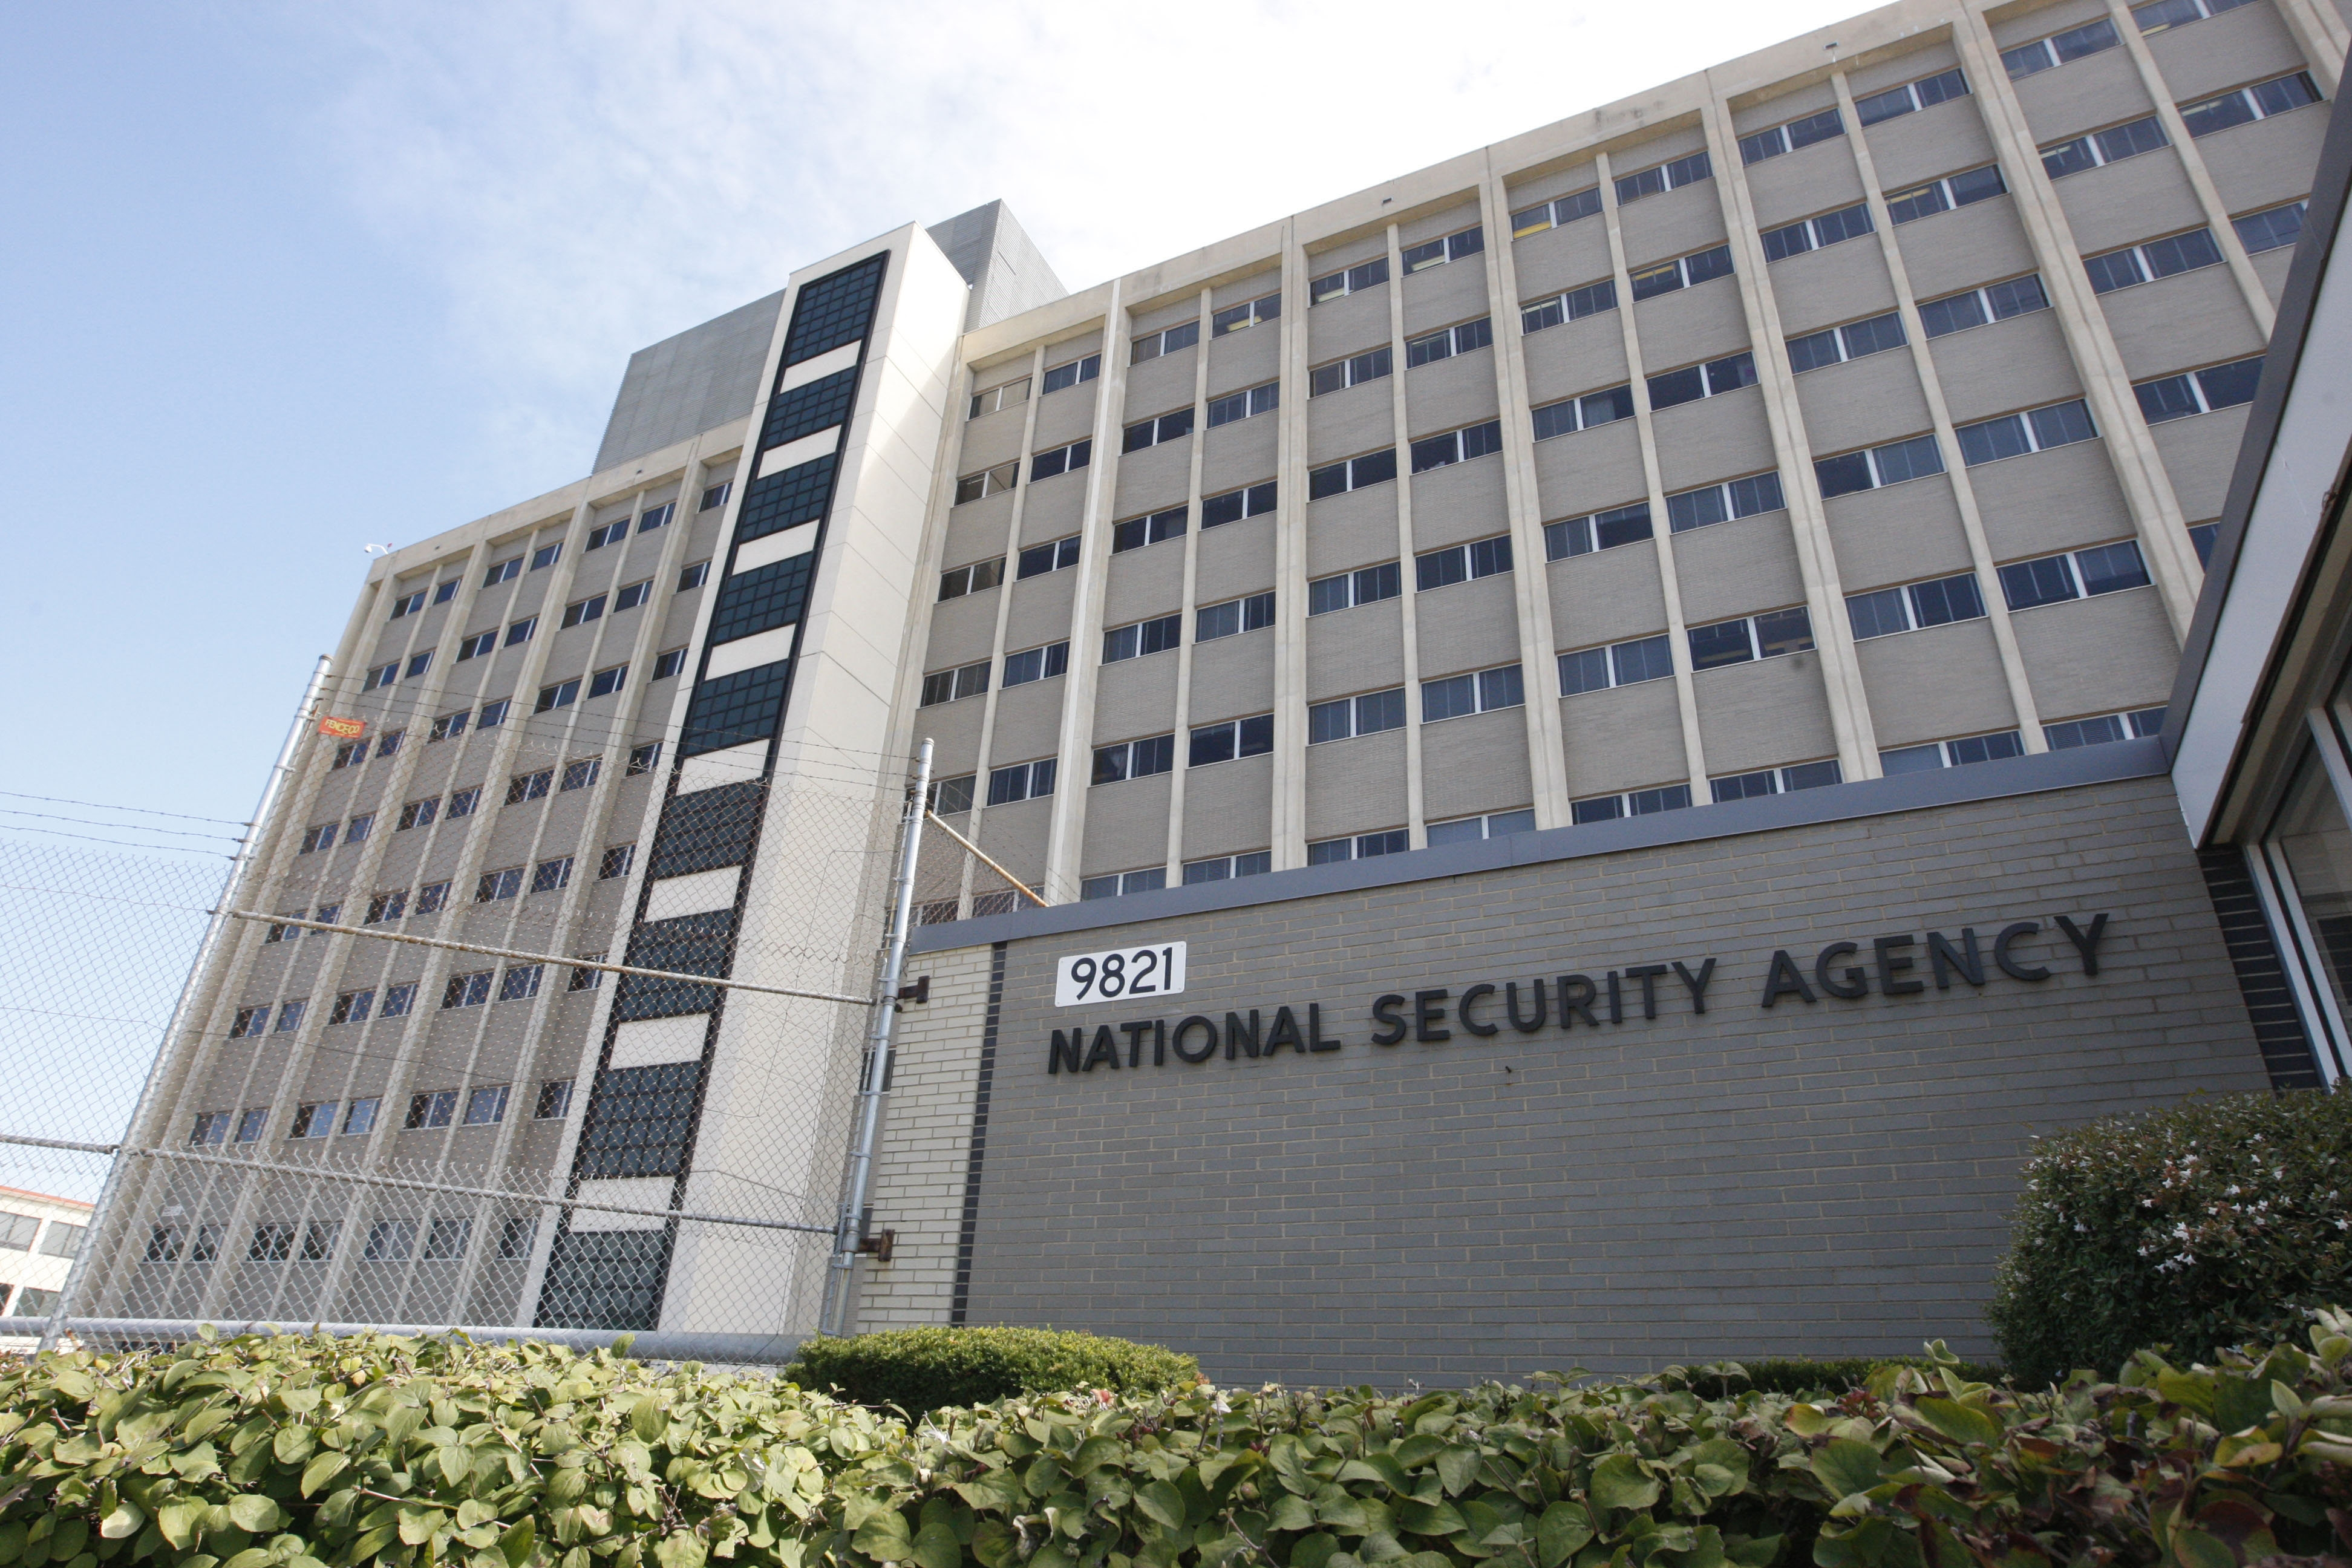 File photo, shows the National Security Agency building at Fort Meade, Md.  (AP Photo/Charles Dharapak, File)